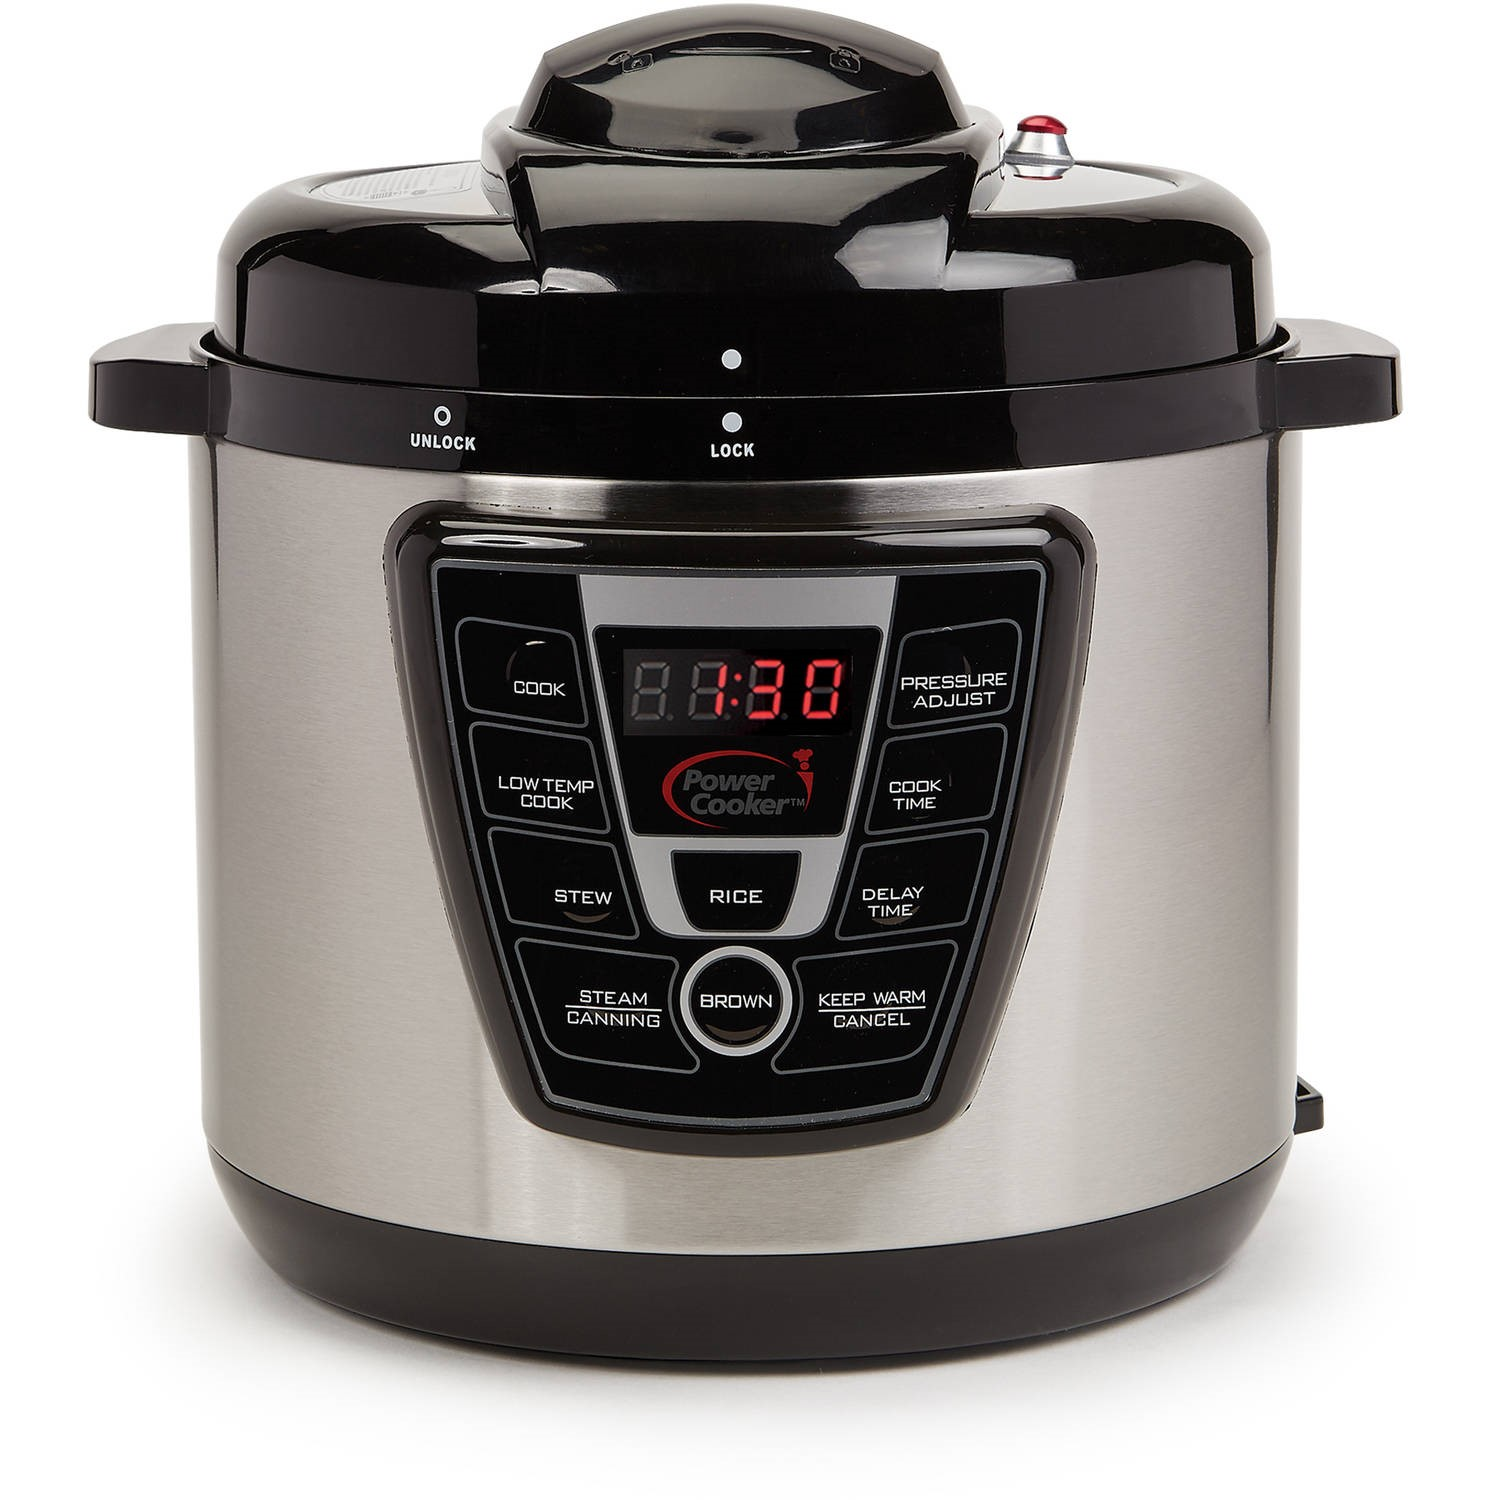 Power Cooker 8qt Pressure Cooker